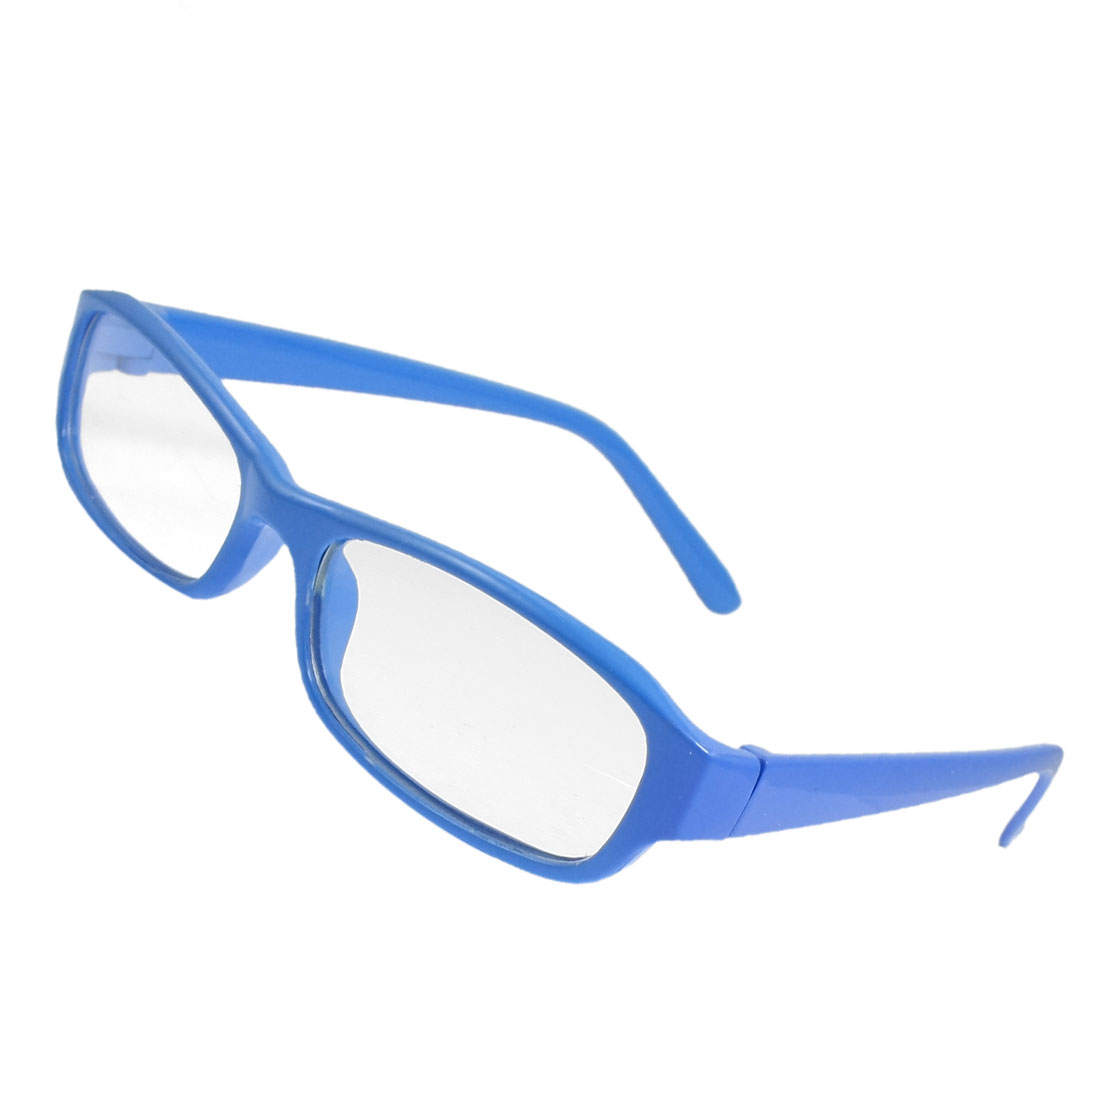 Woman Eyewear Blue Plastic Full Frame Clear Lens Plain Glasses